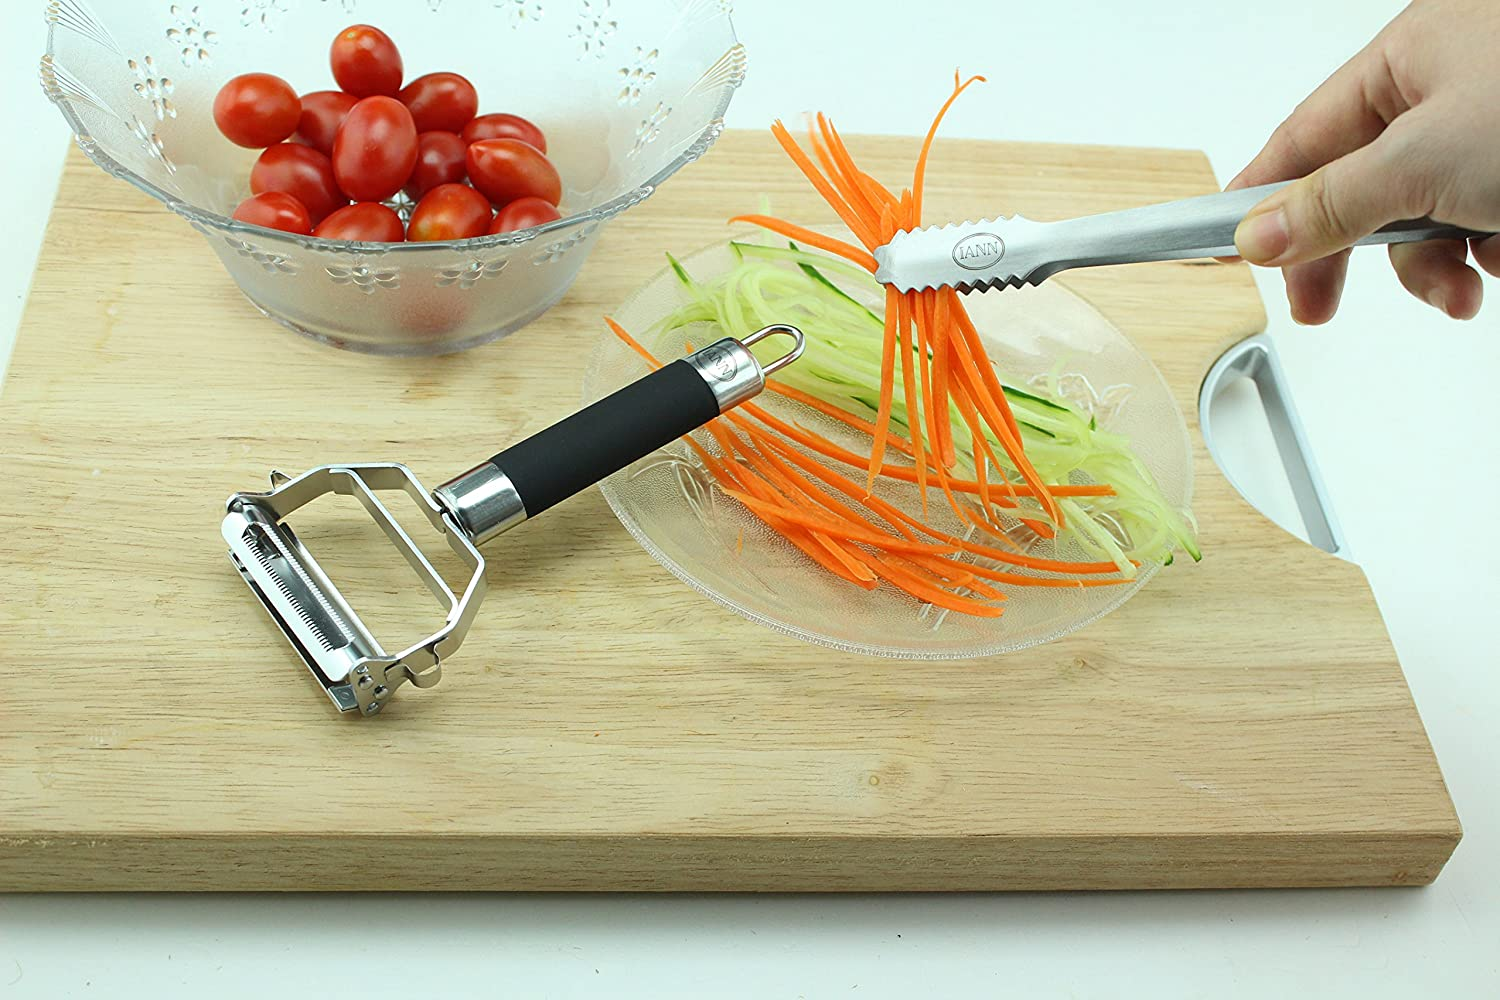 Safety Rubber Grip 2 in 1 Julienne Tool /& Vegetable Peeler Serving Tongs COMINHKPR70334 ss